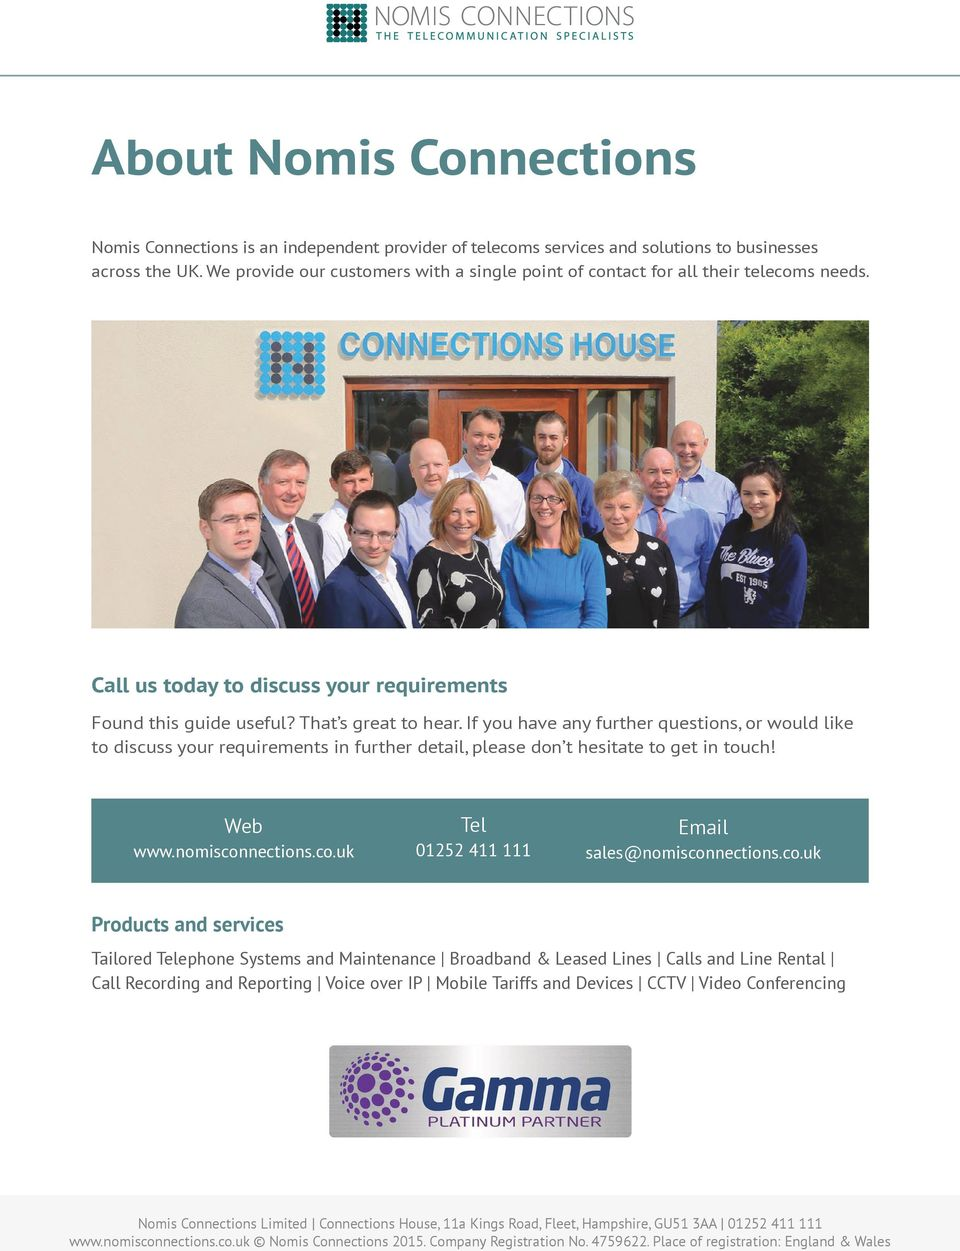 If you have any further questions, or would like to discuss your requirements in further detail, please don t hesitate to get in touch! Web www.nomiscon